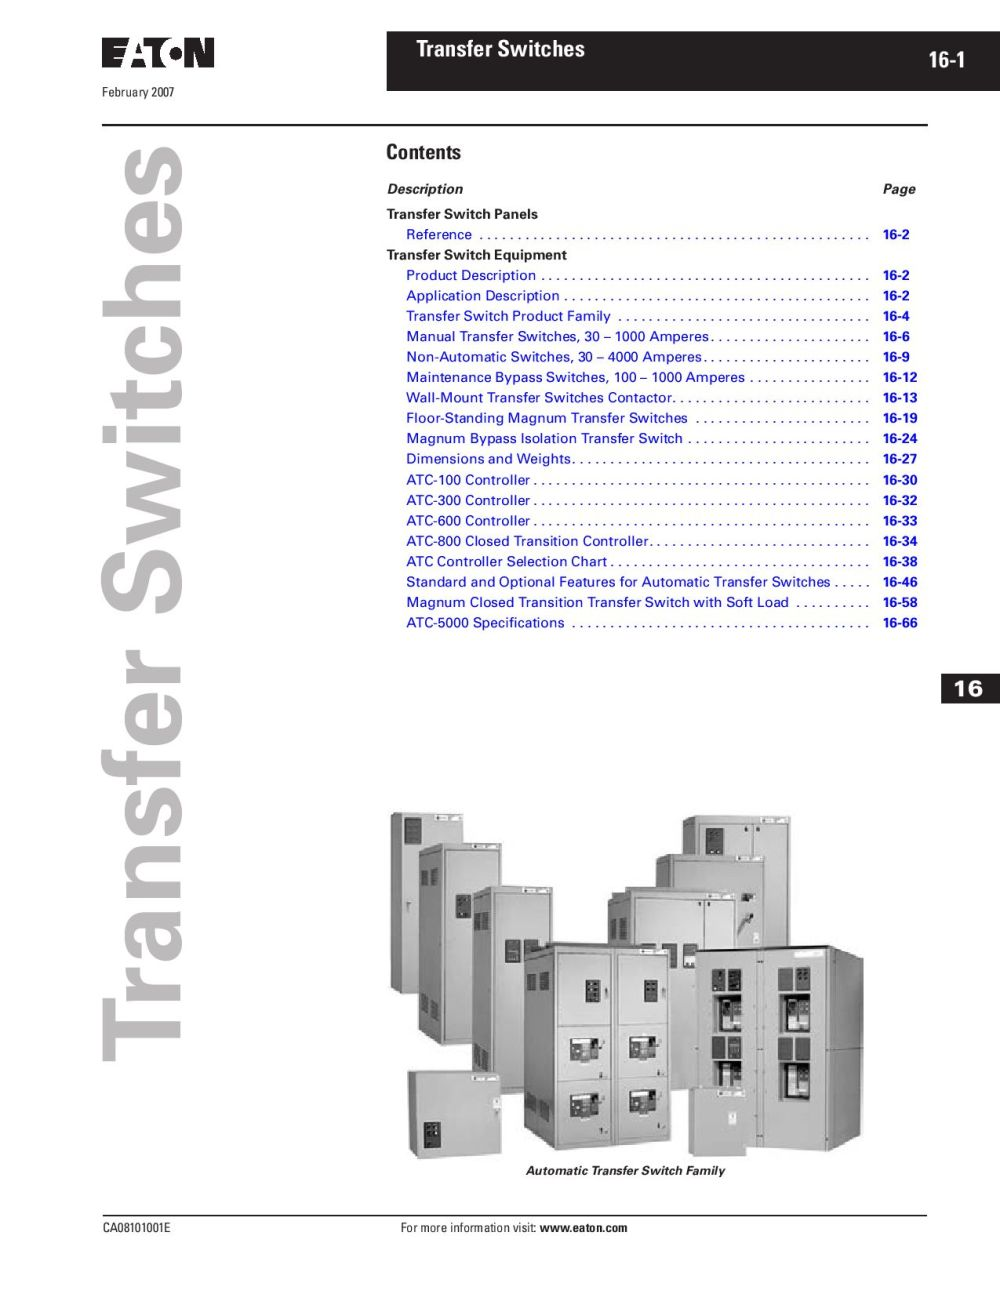 medium resolution of tab 16 transfer switches by greg campbell issuu